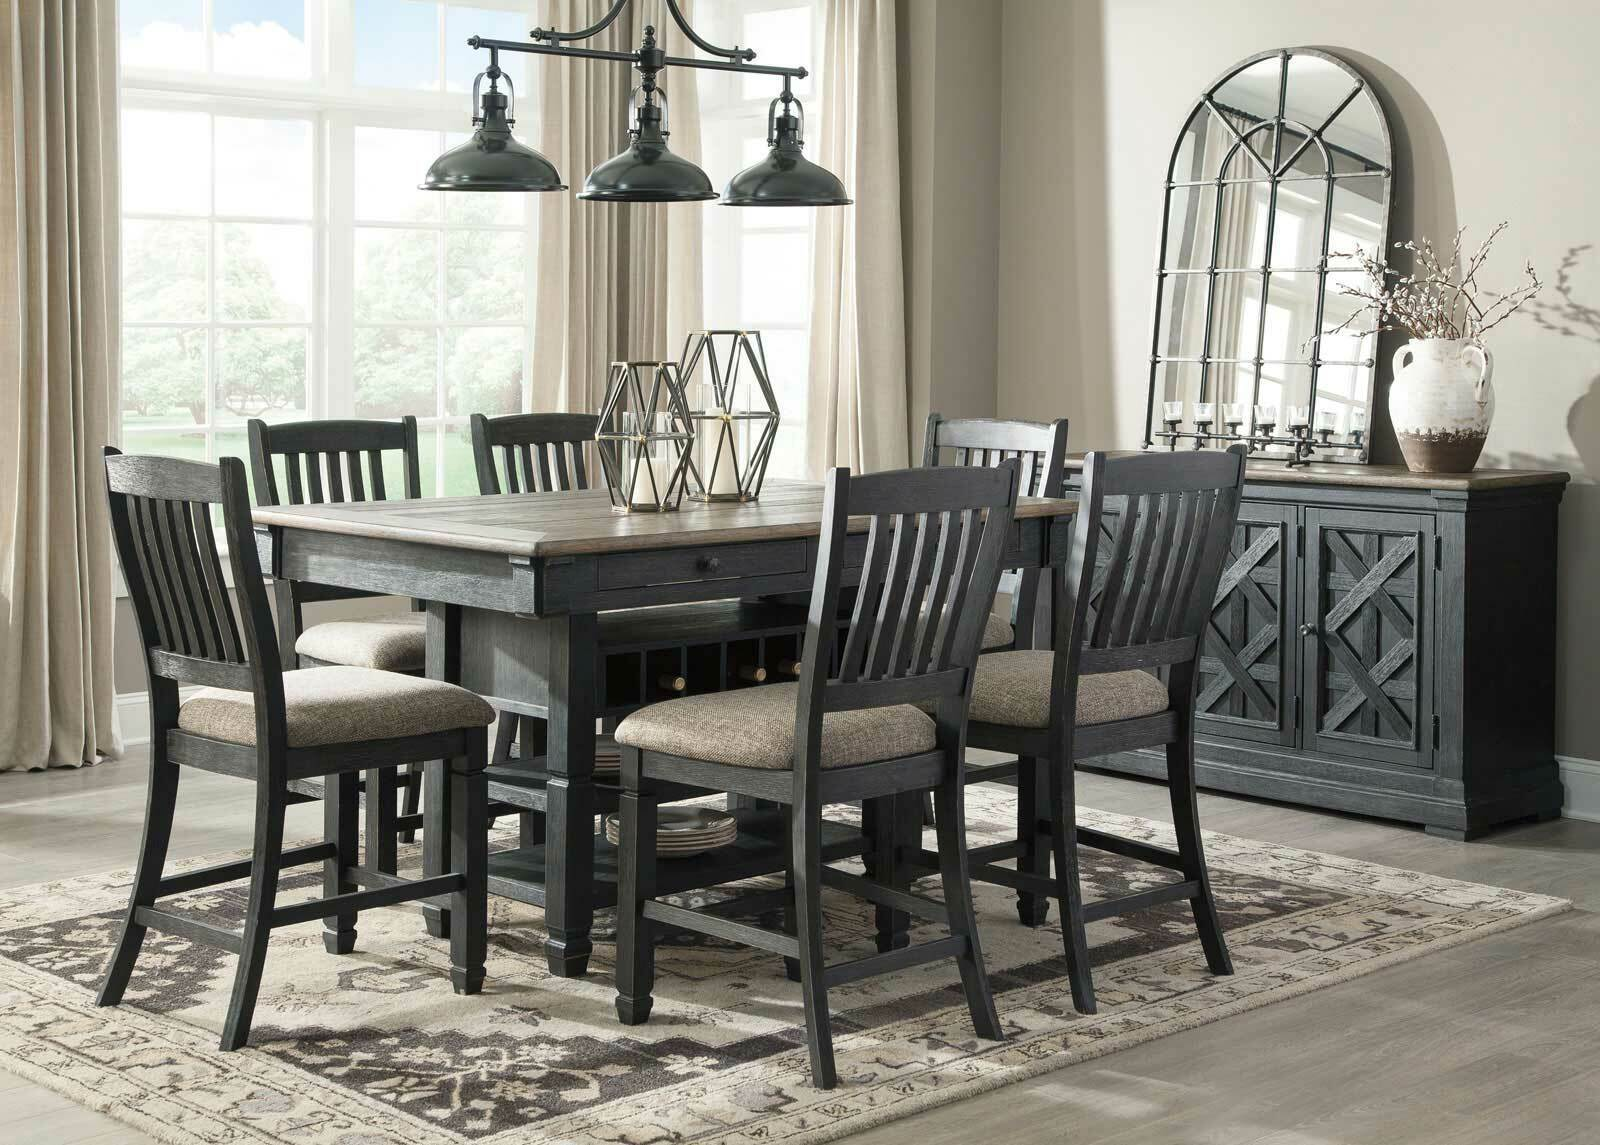 Cottage Counter Height 7 Pieces Dining Room Set Black Square Table Chair Ic53 For Sale Online Ebay